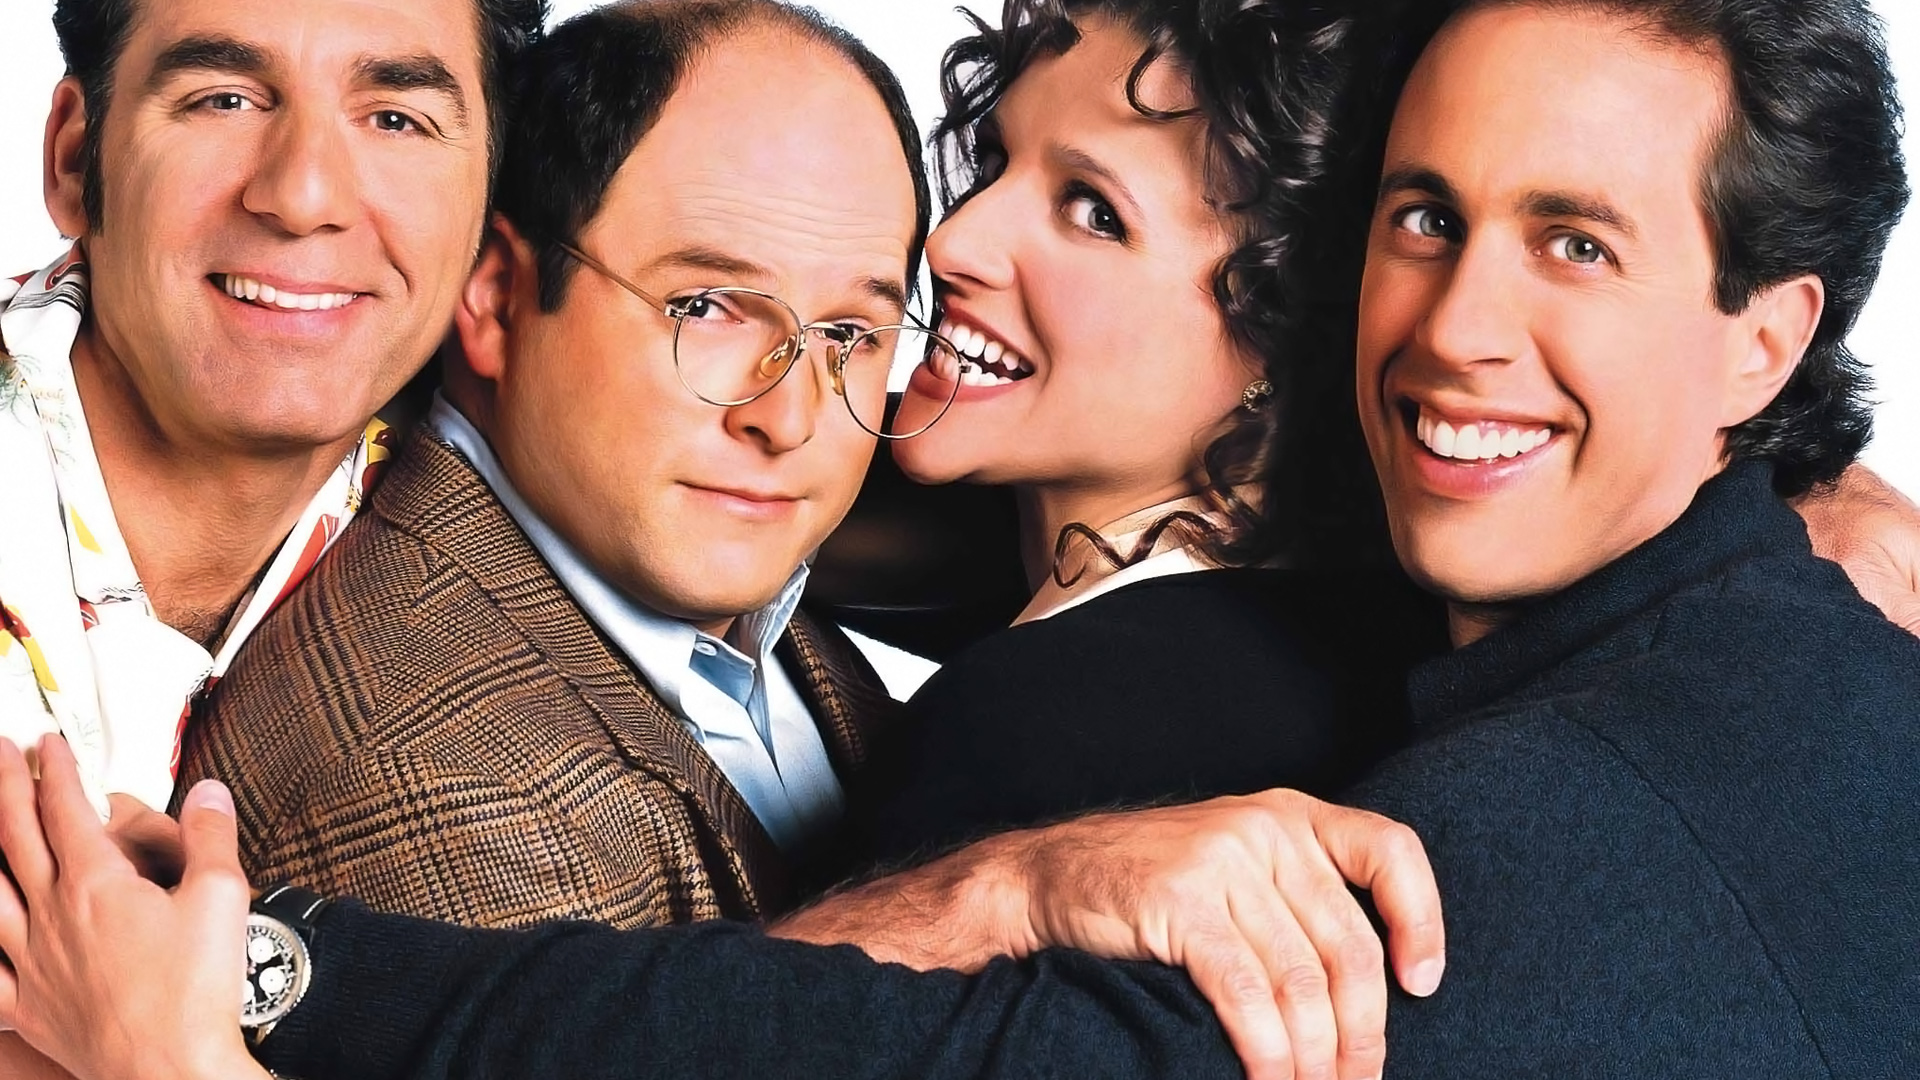 an examination of the sitcom seinfield The soup nazi seinfeld episode: episode of the nbc sitcom seinfeld in the scrubs episode my self-examination he denies he is the soup nazi when.